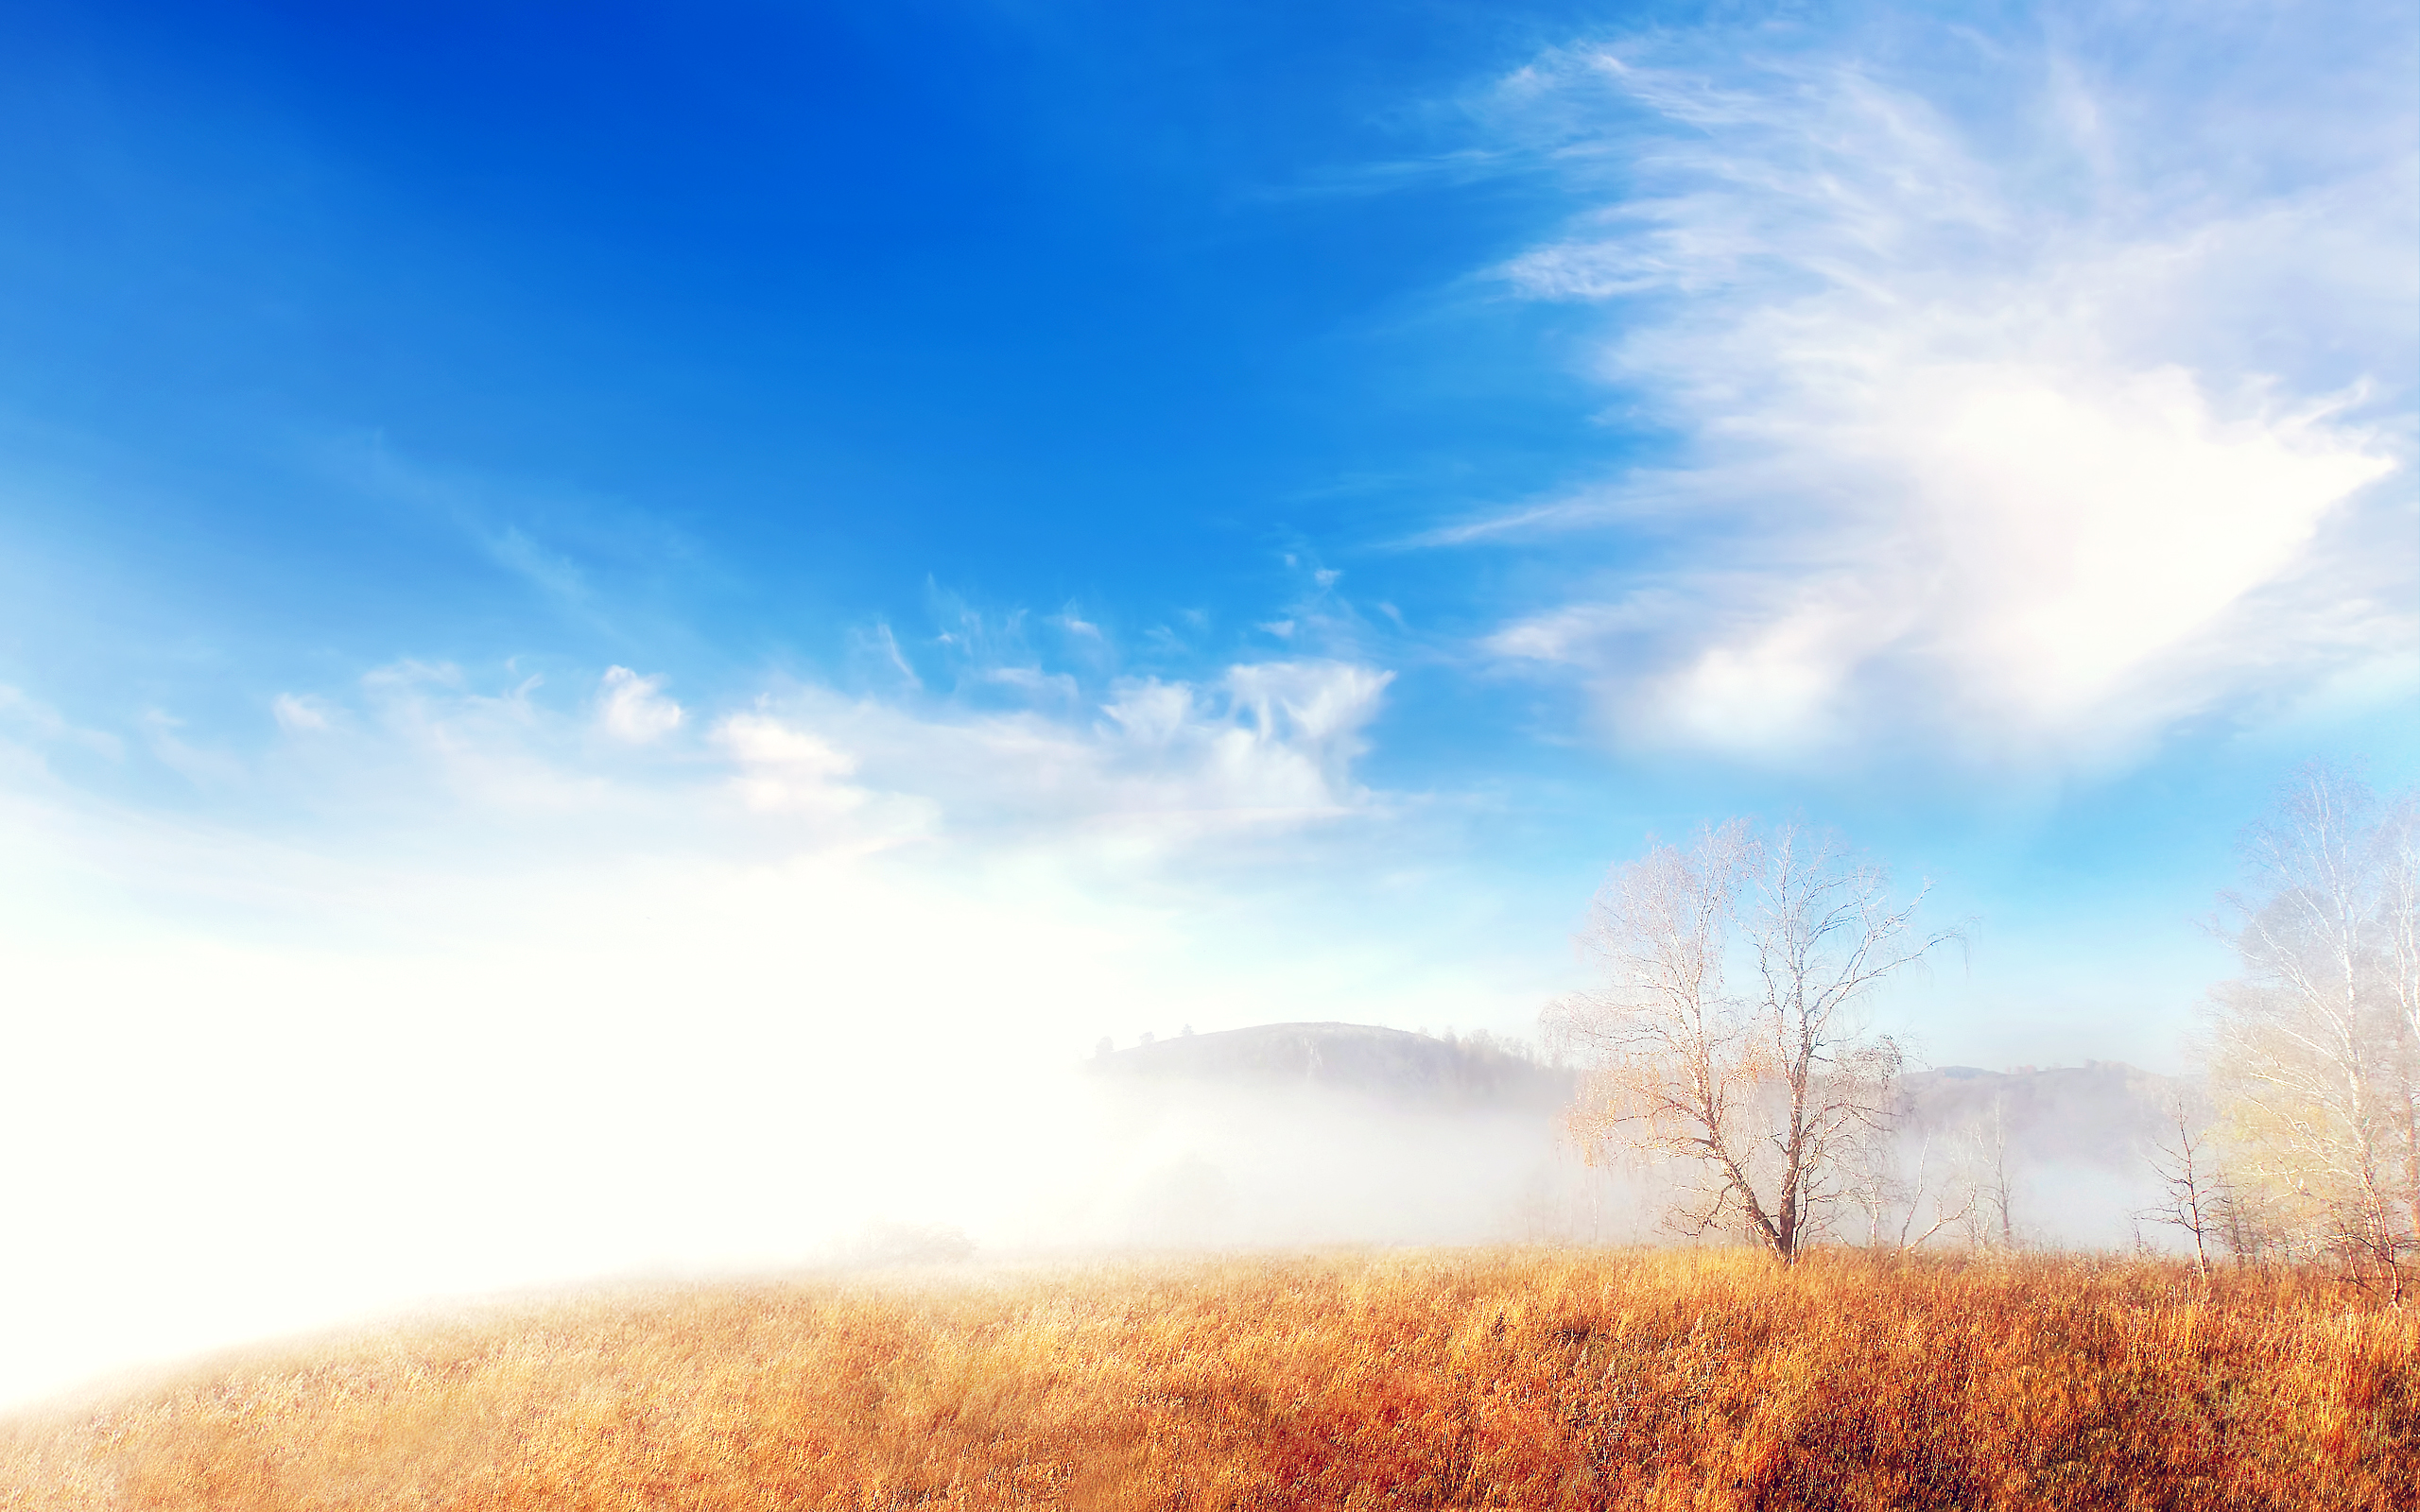 HD Wallpapers Trees Cloud Fog Lscape